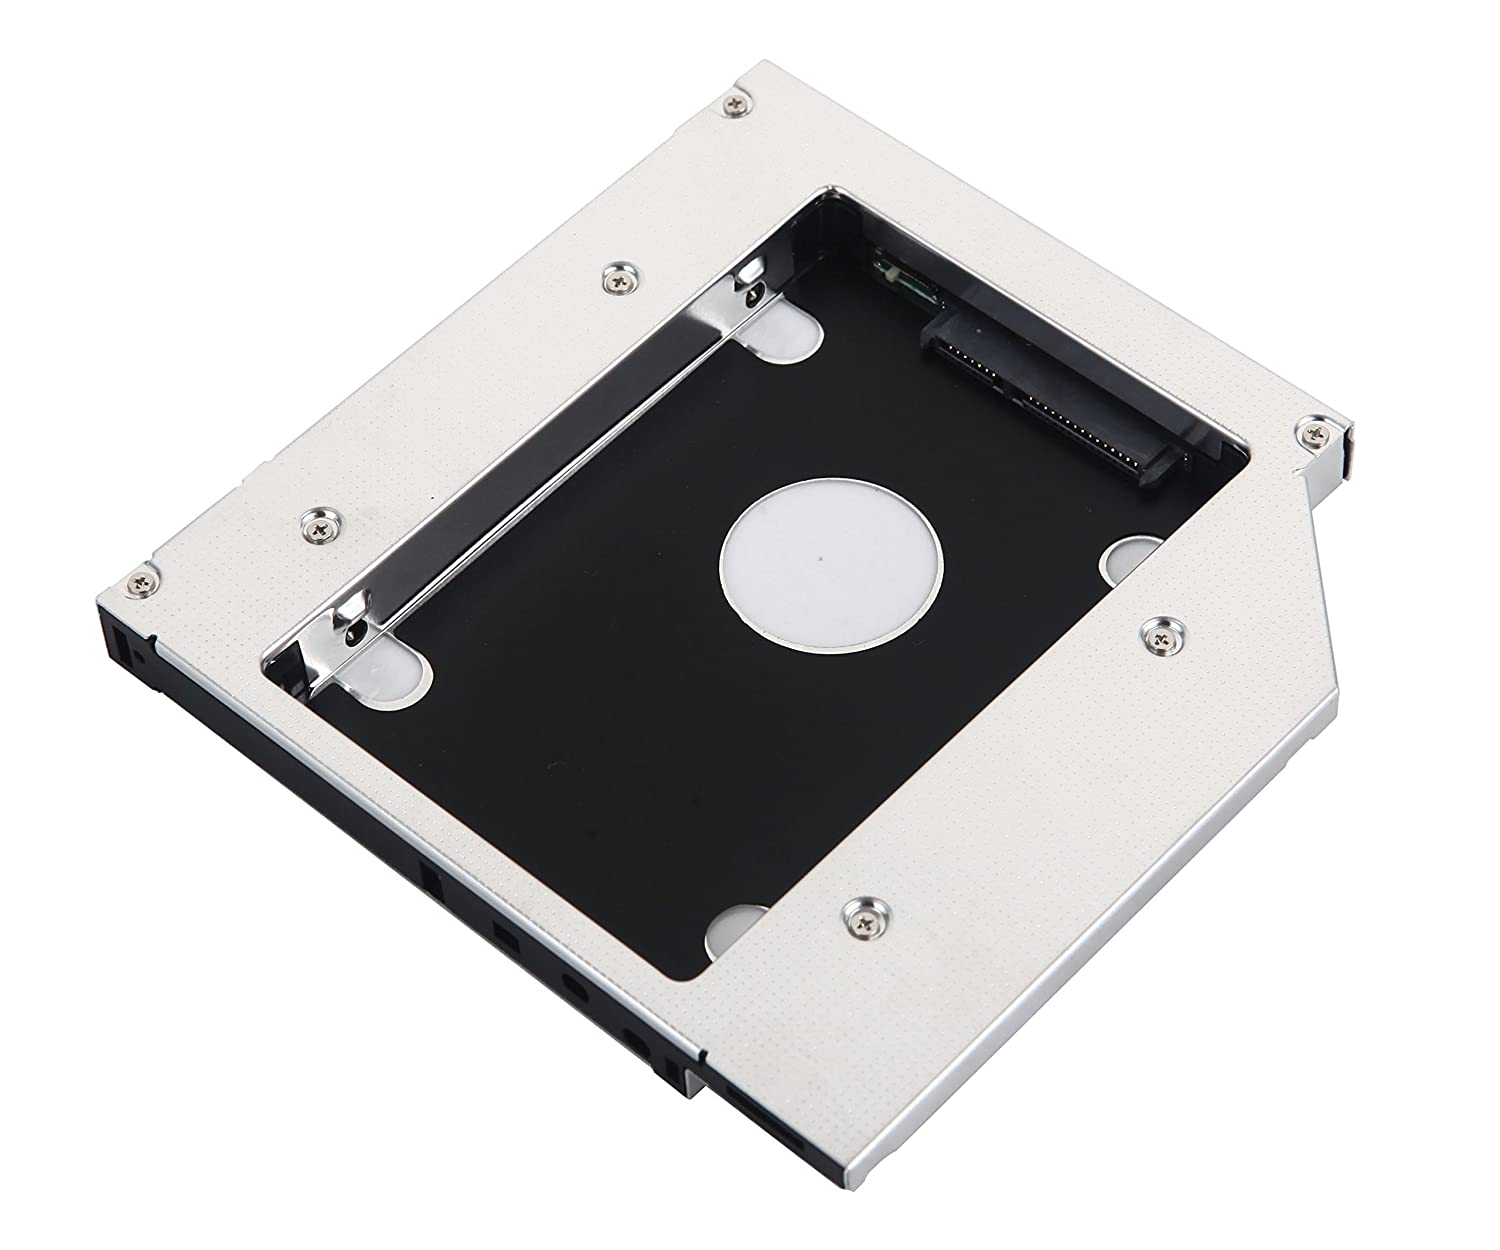 Deyoung 2nd Hard Drive HDD SSD Caddy Adapter for HP: Amazon